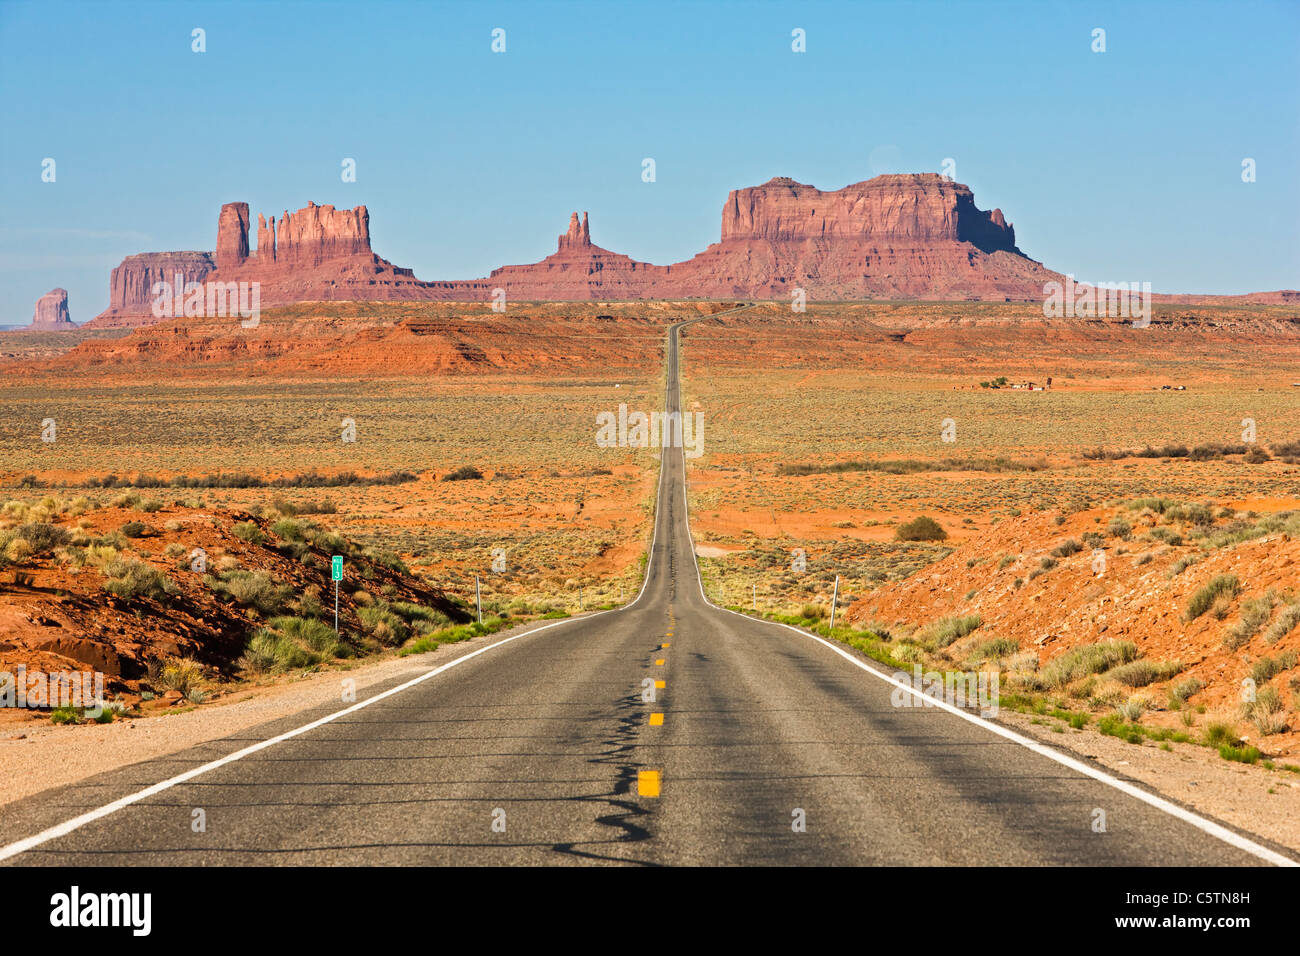 USA, Utah, Monument Valley, Highway 163 - Stock Image